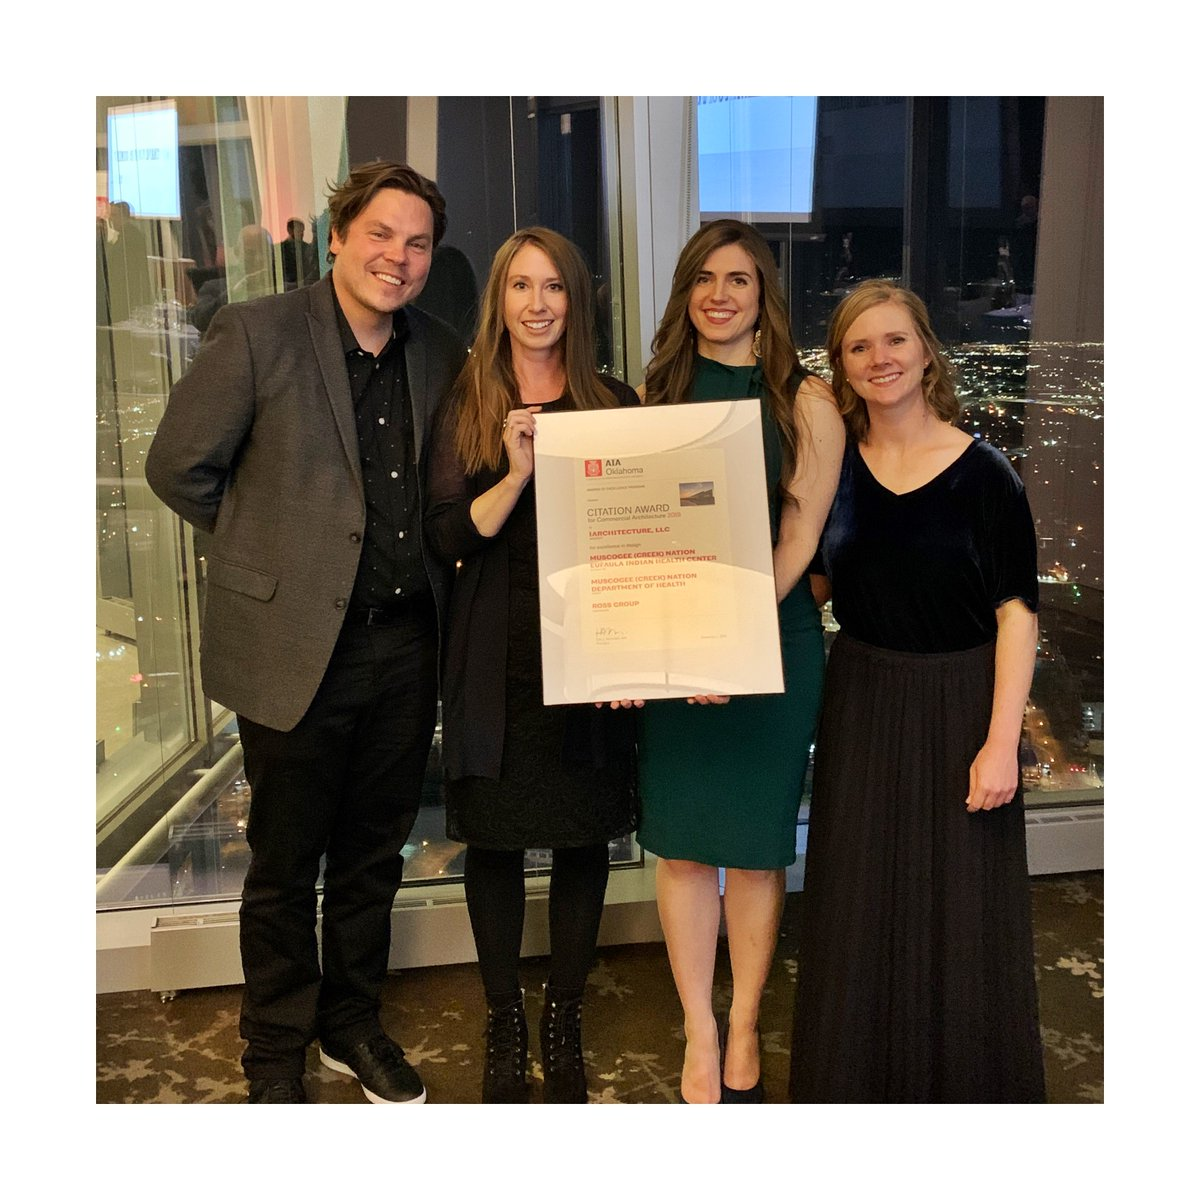 Big congrats to our team for winning a Citation Award at the AIA Oklahoma Design Excellence Awards  for the Eufala Indian Health Center! . #1architecture #architecture #tulsaarchitects #designcanchangetheworld #sustainability #clientsfirst #creativity #onecanmakeadifference<br>http://pic.twitter.com/uyjzua5bvW